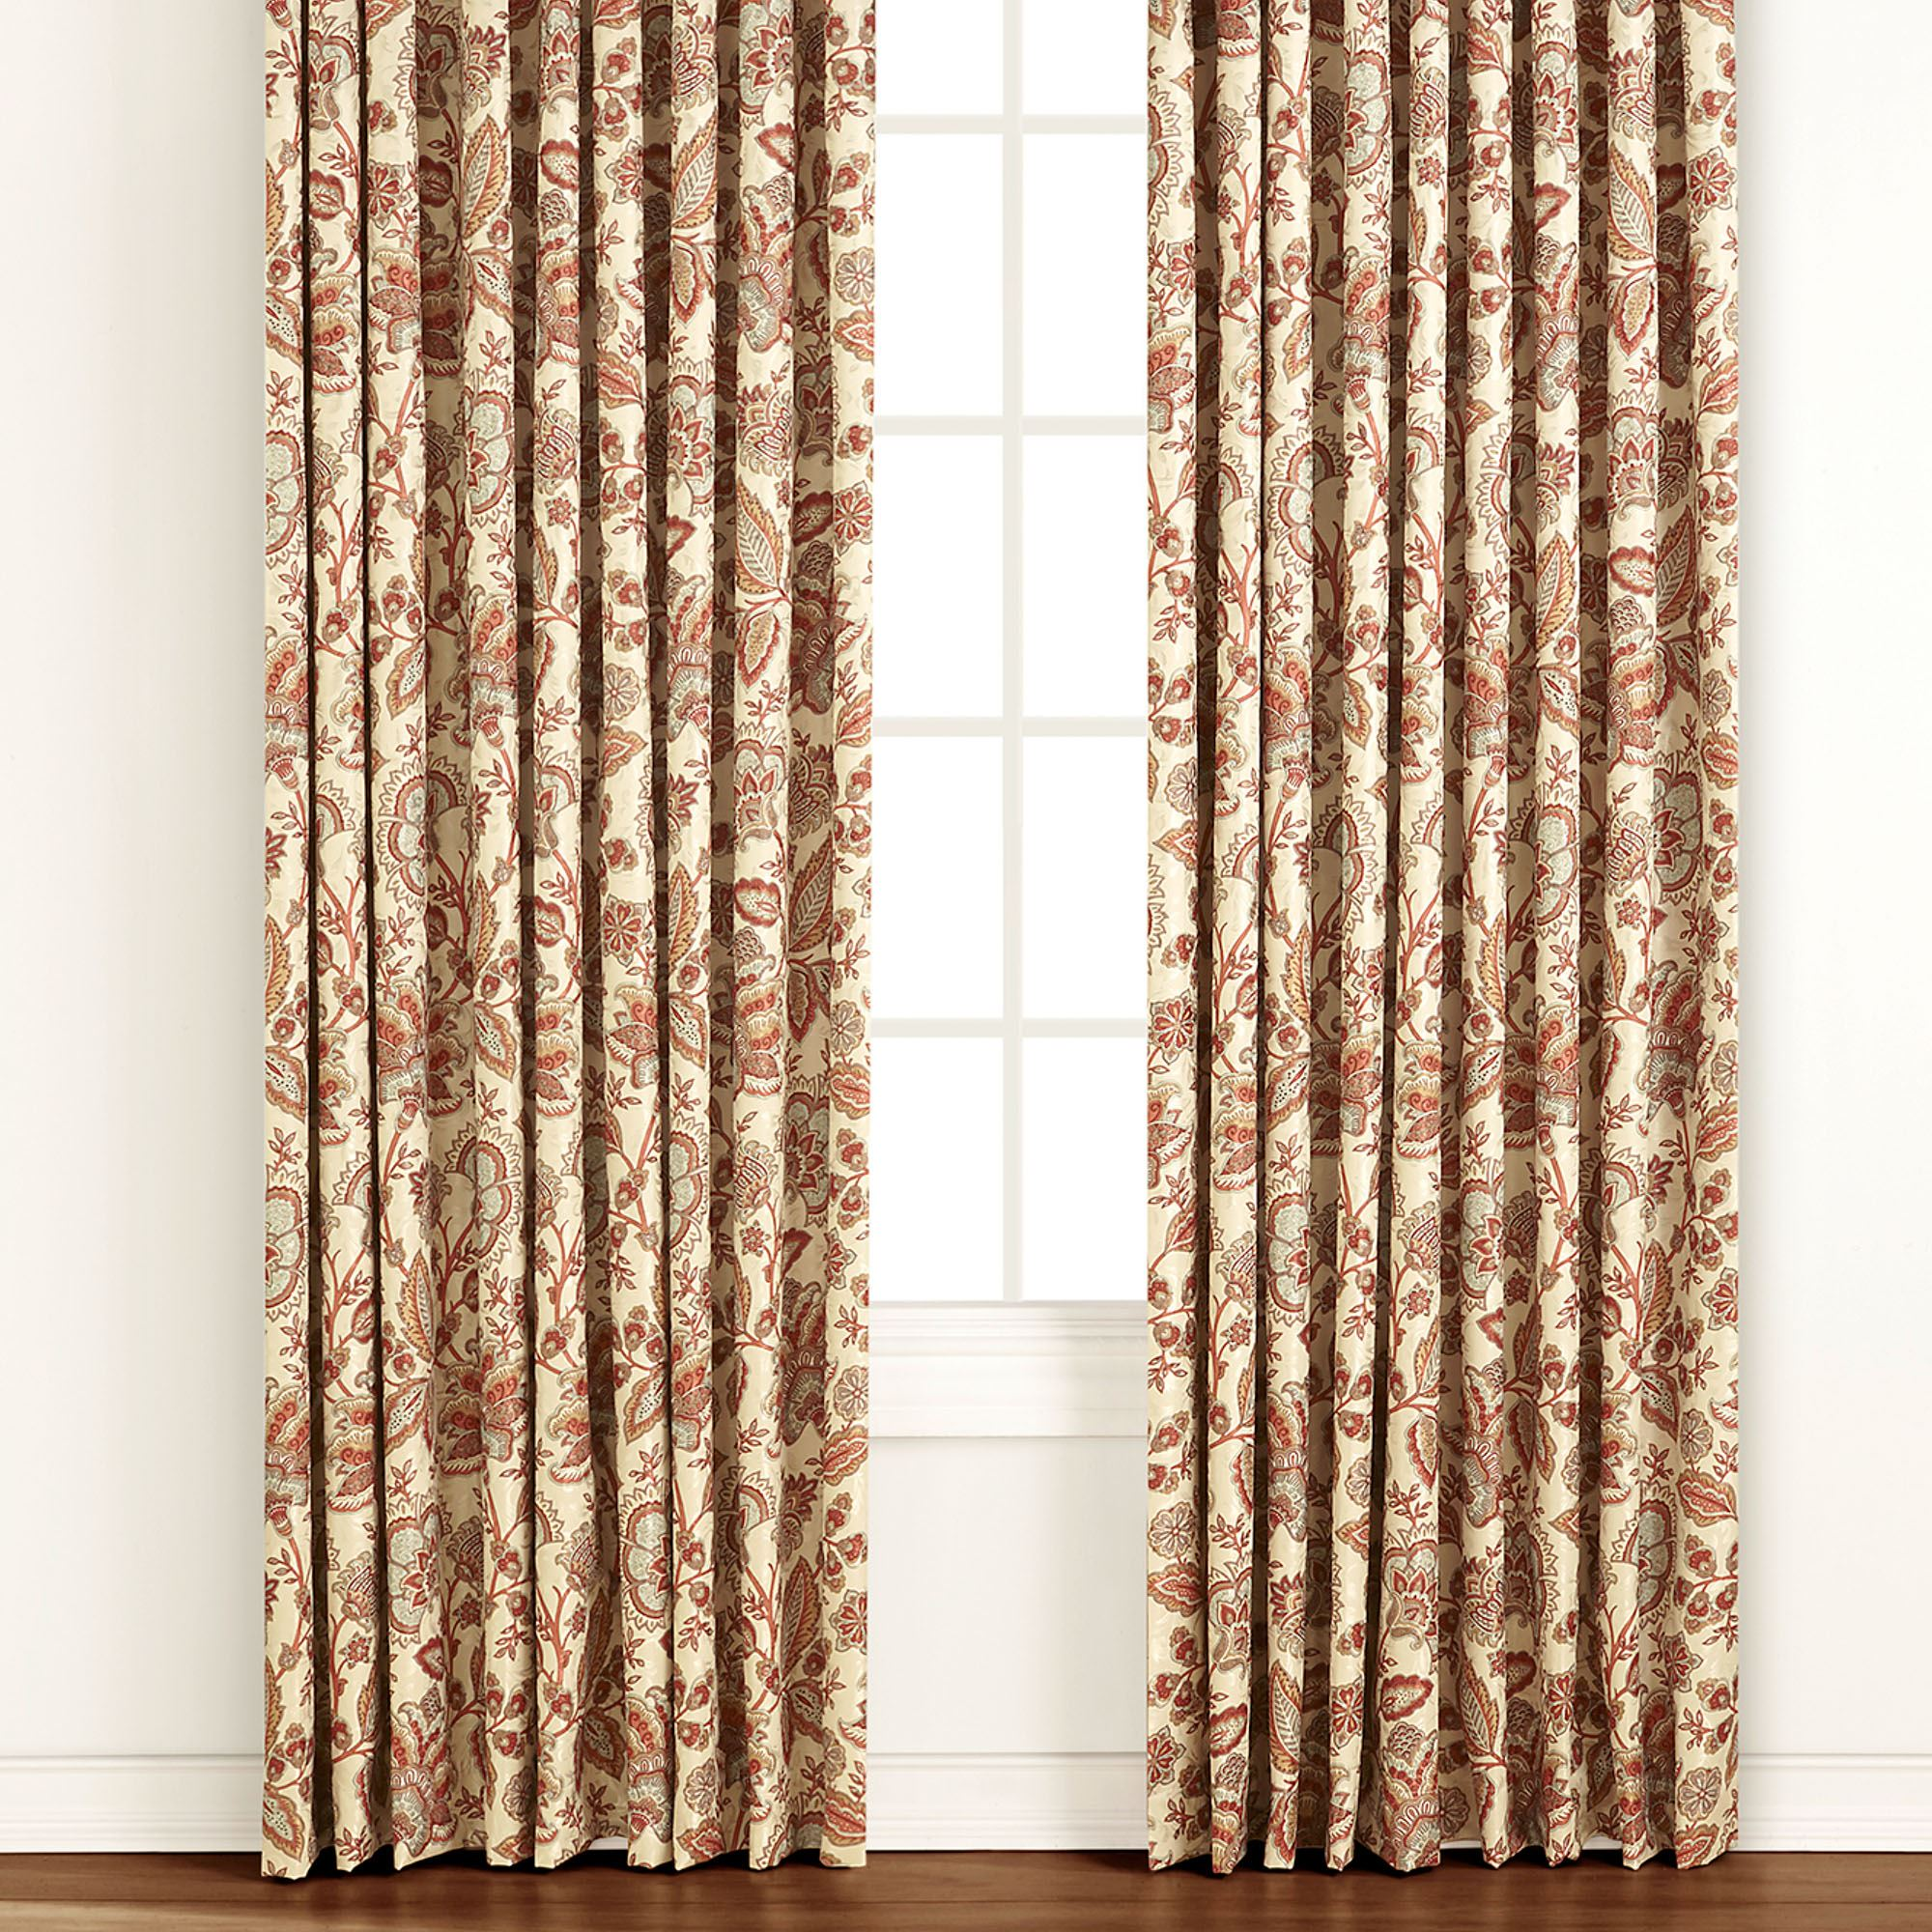 set zero pleat ip com tab room valance panel darkening sun of back pair bartlett pinch walmart